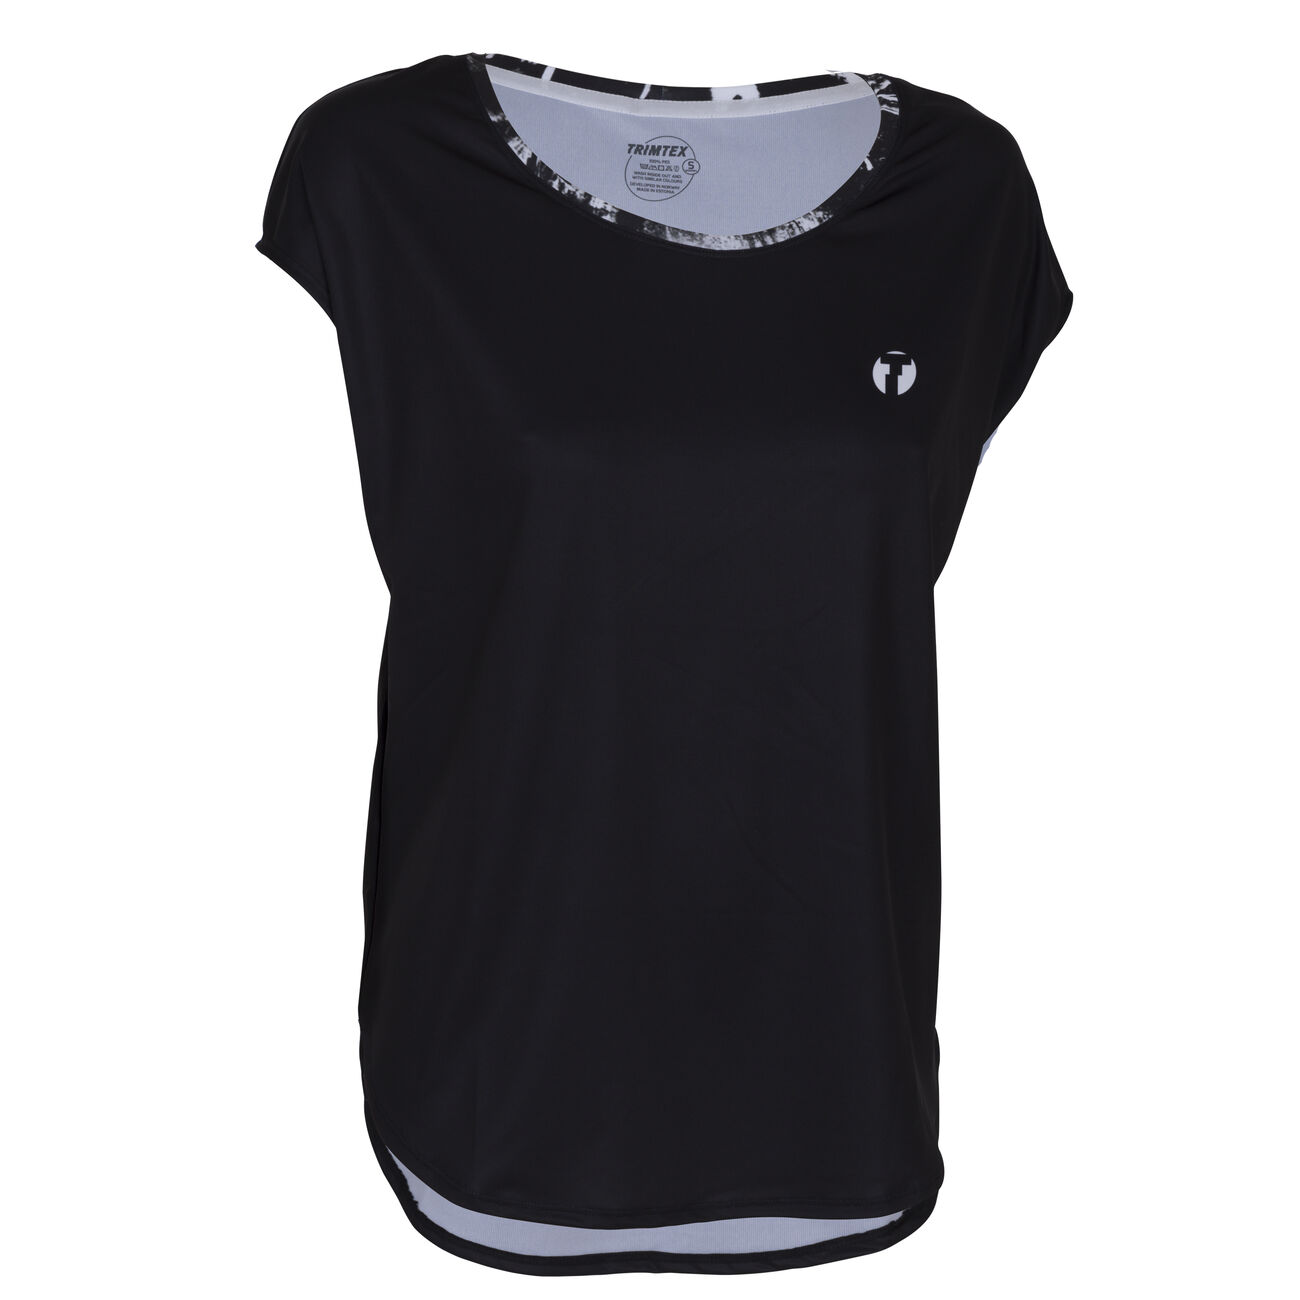 Breeze t-shirt women's